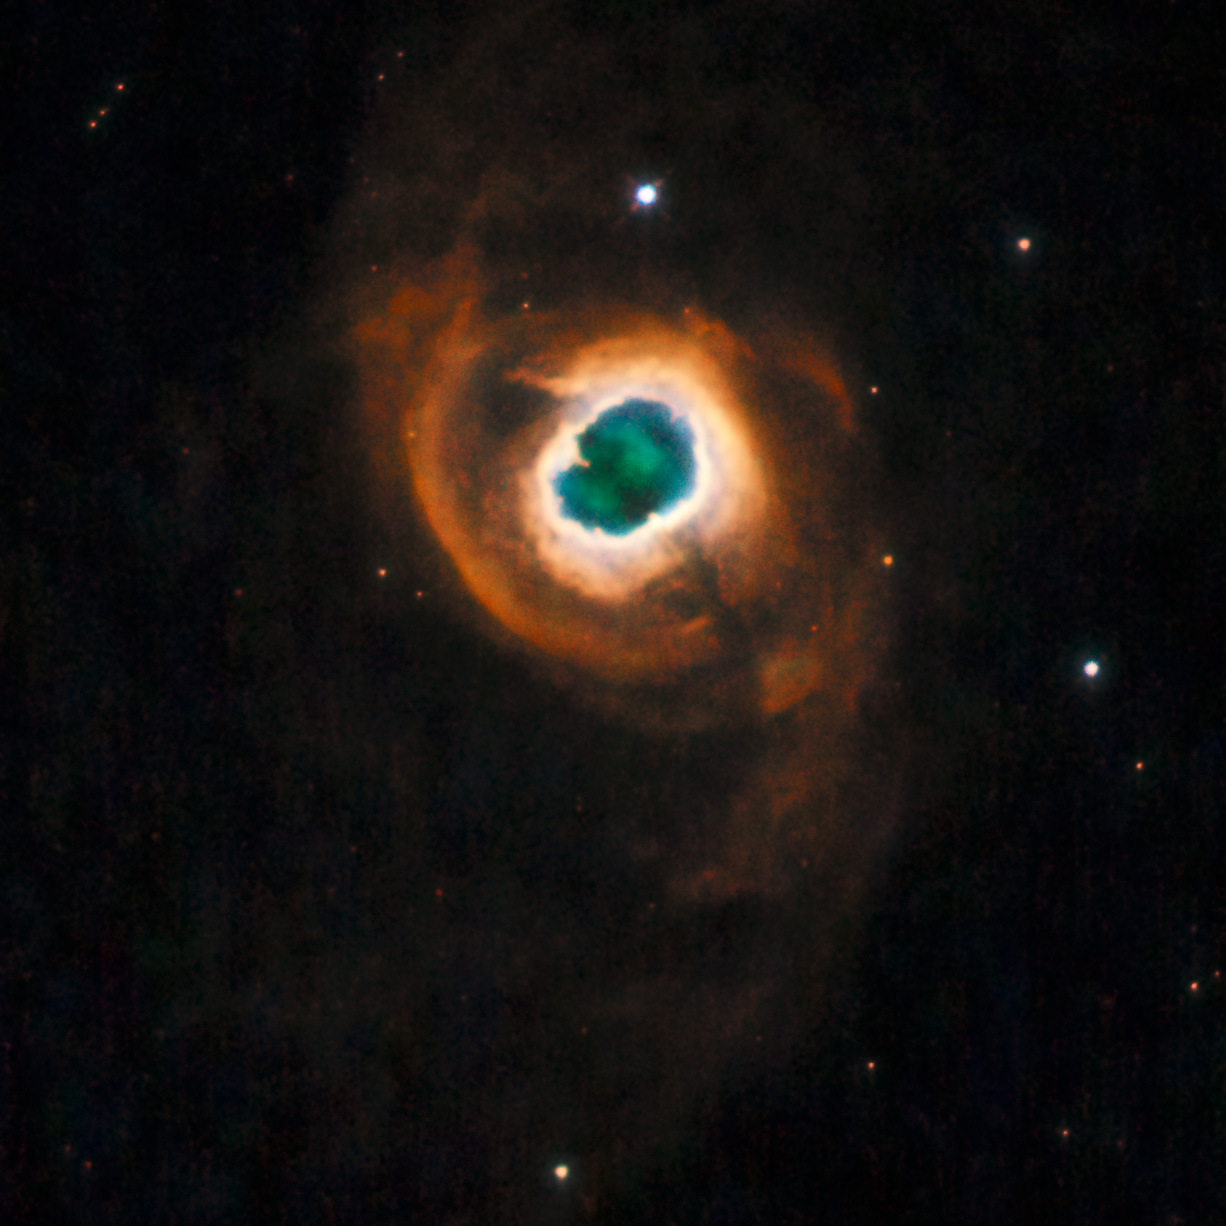 Planetary nebula Kohoutek4-55, 4600 light-years from Earth, in the direction of the constellation Cygnus. Image credit: NASA, ESA and the Hubble Heritage Team (STScI/AURA). Acknowledgment: R. Sahai and J. Trauger (Jet Propulsion Laboratory).